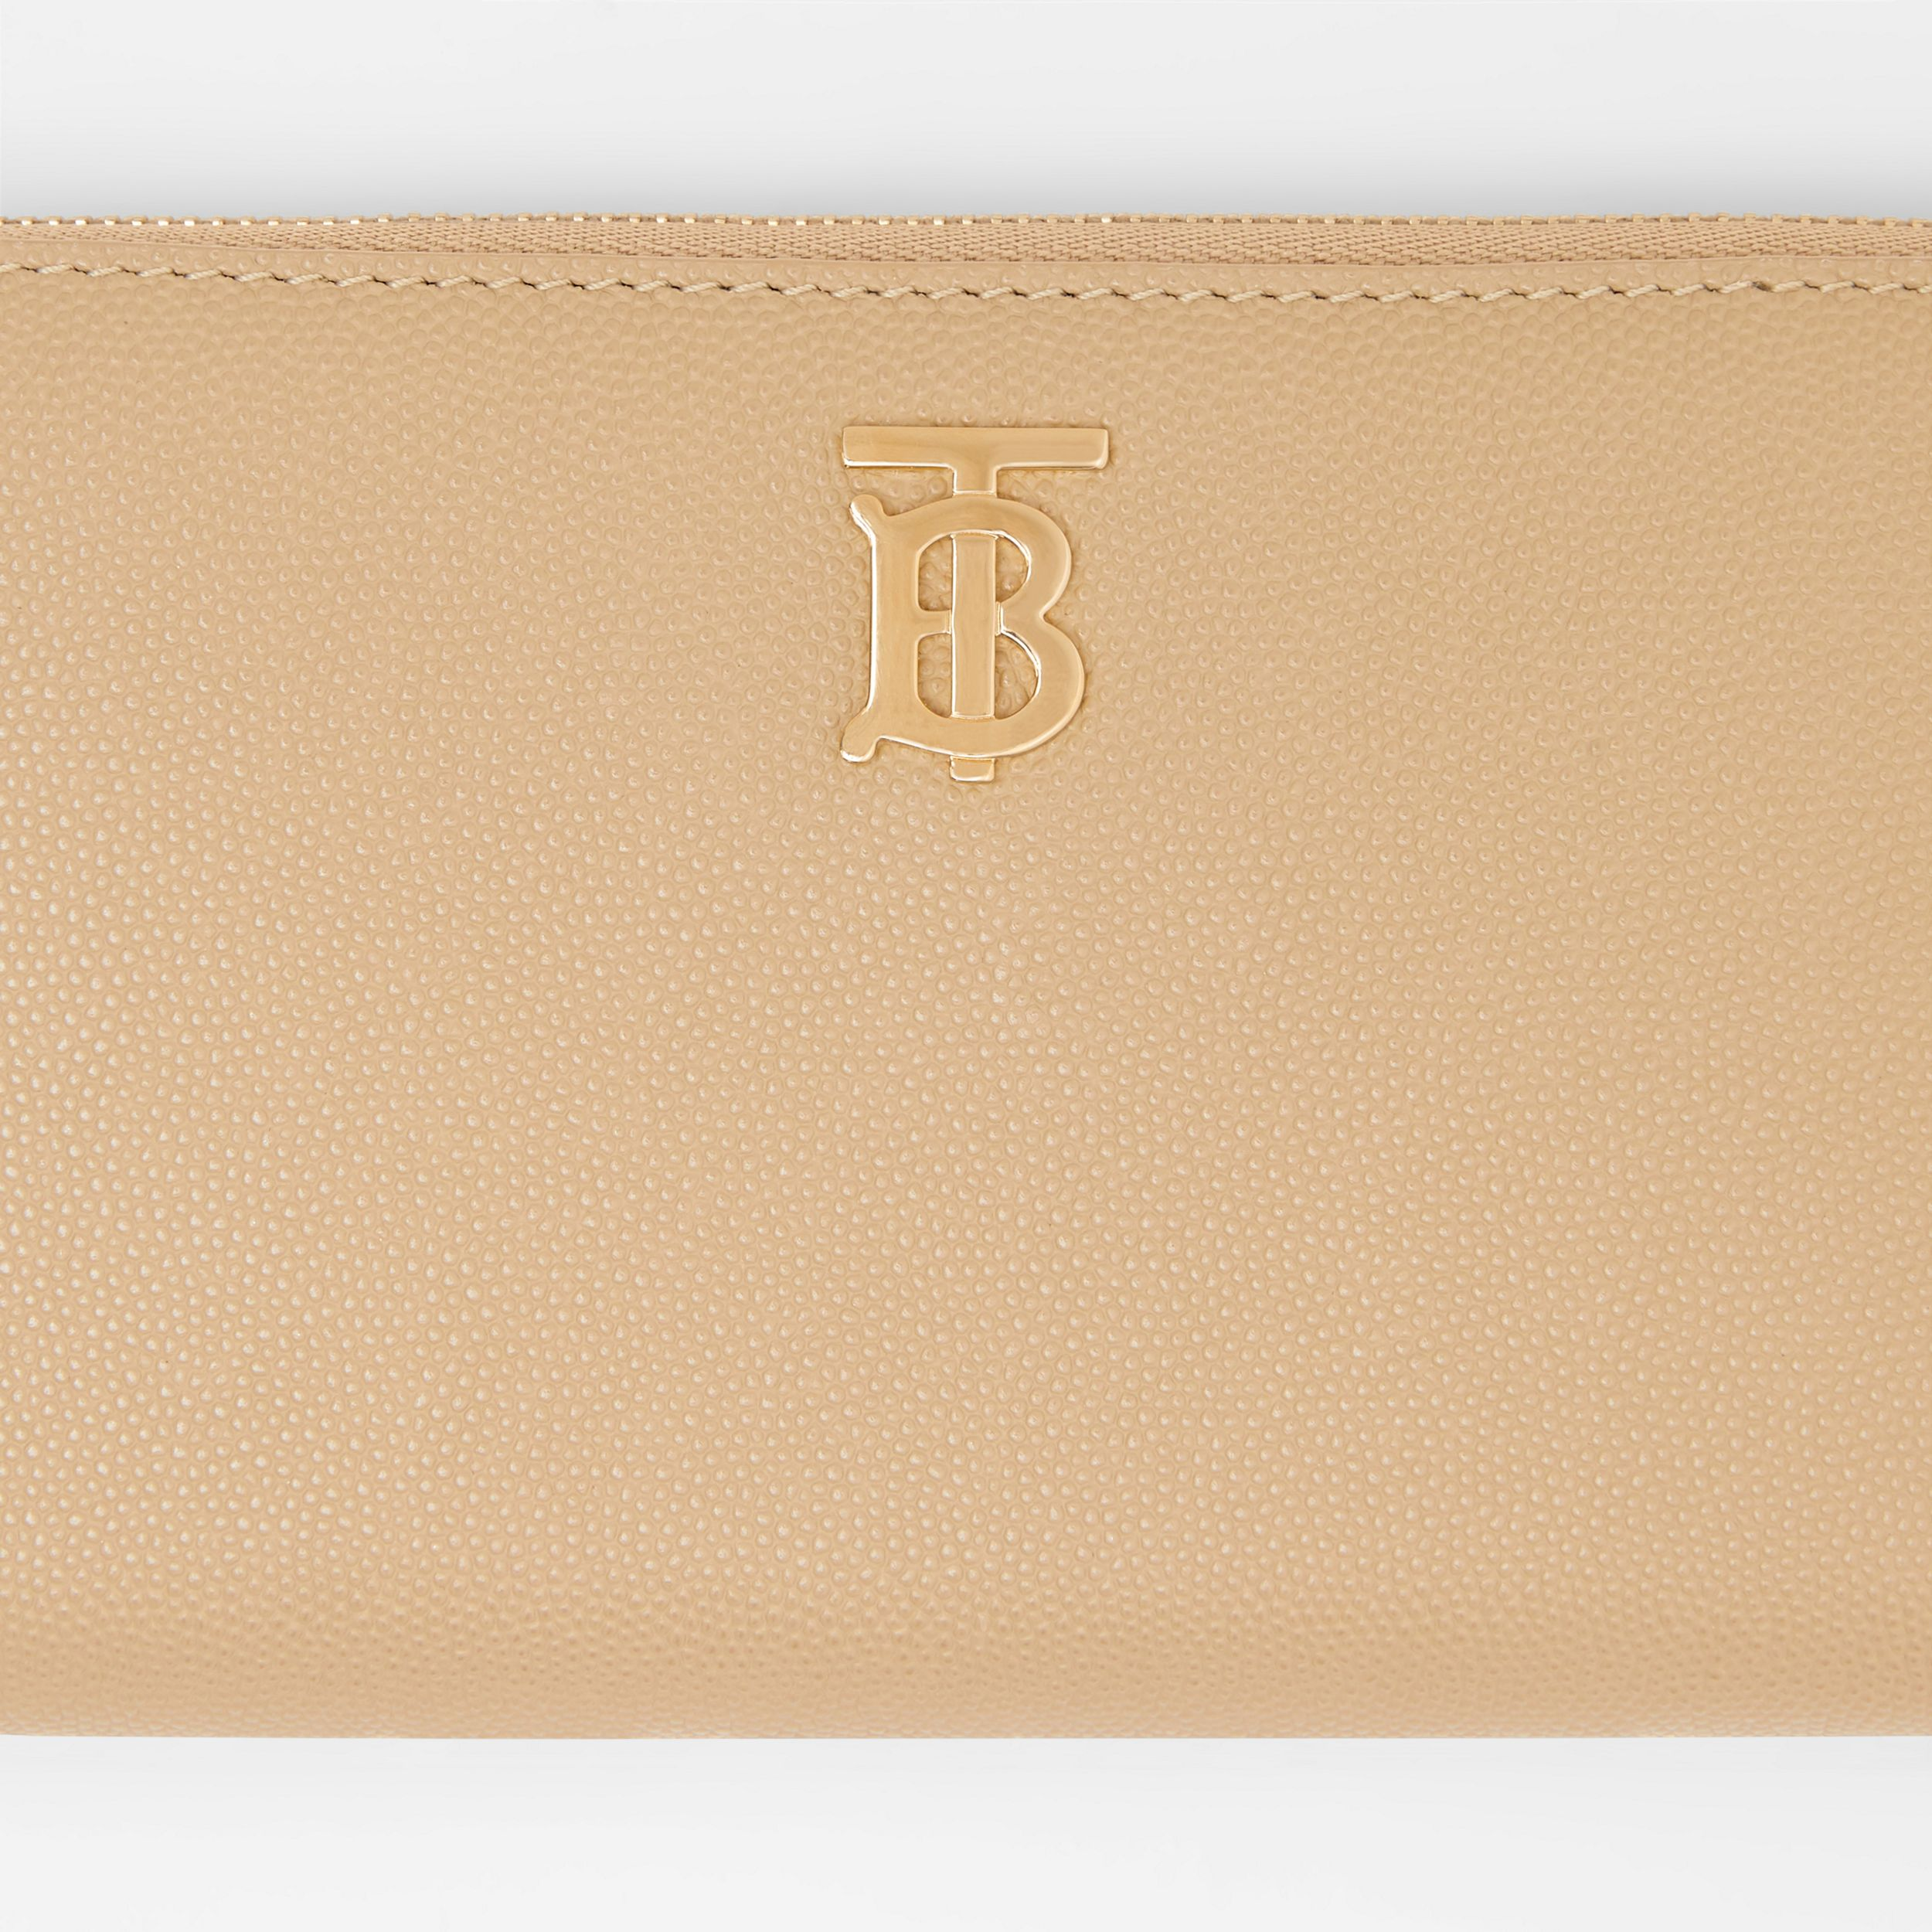 Monogram Motif Grainy Leather Ziparound Wallet in Archive Beige - Women | Burberry Hong Kong S.A.R. - 2